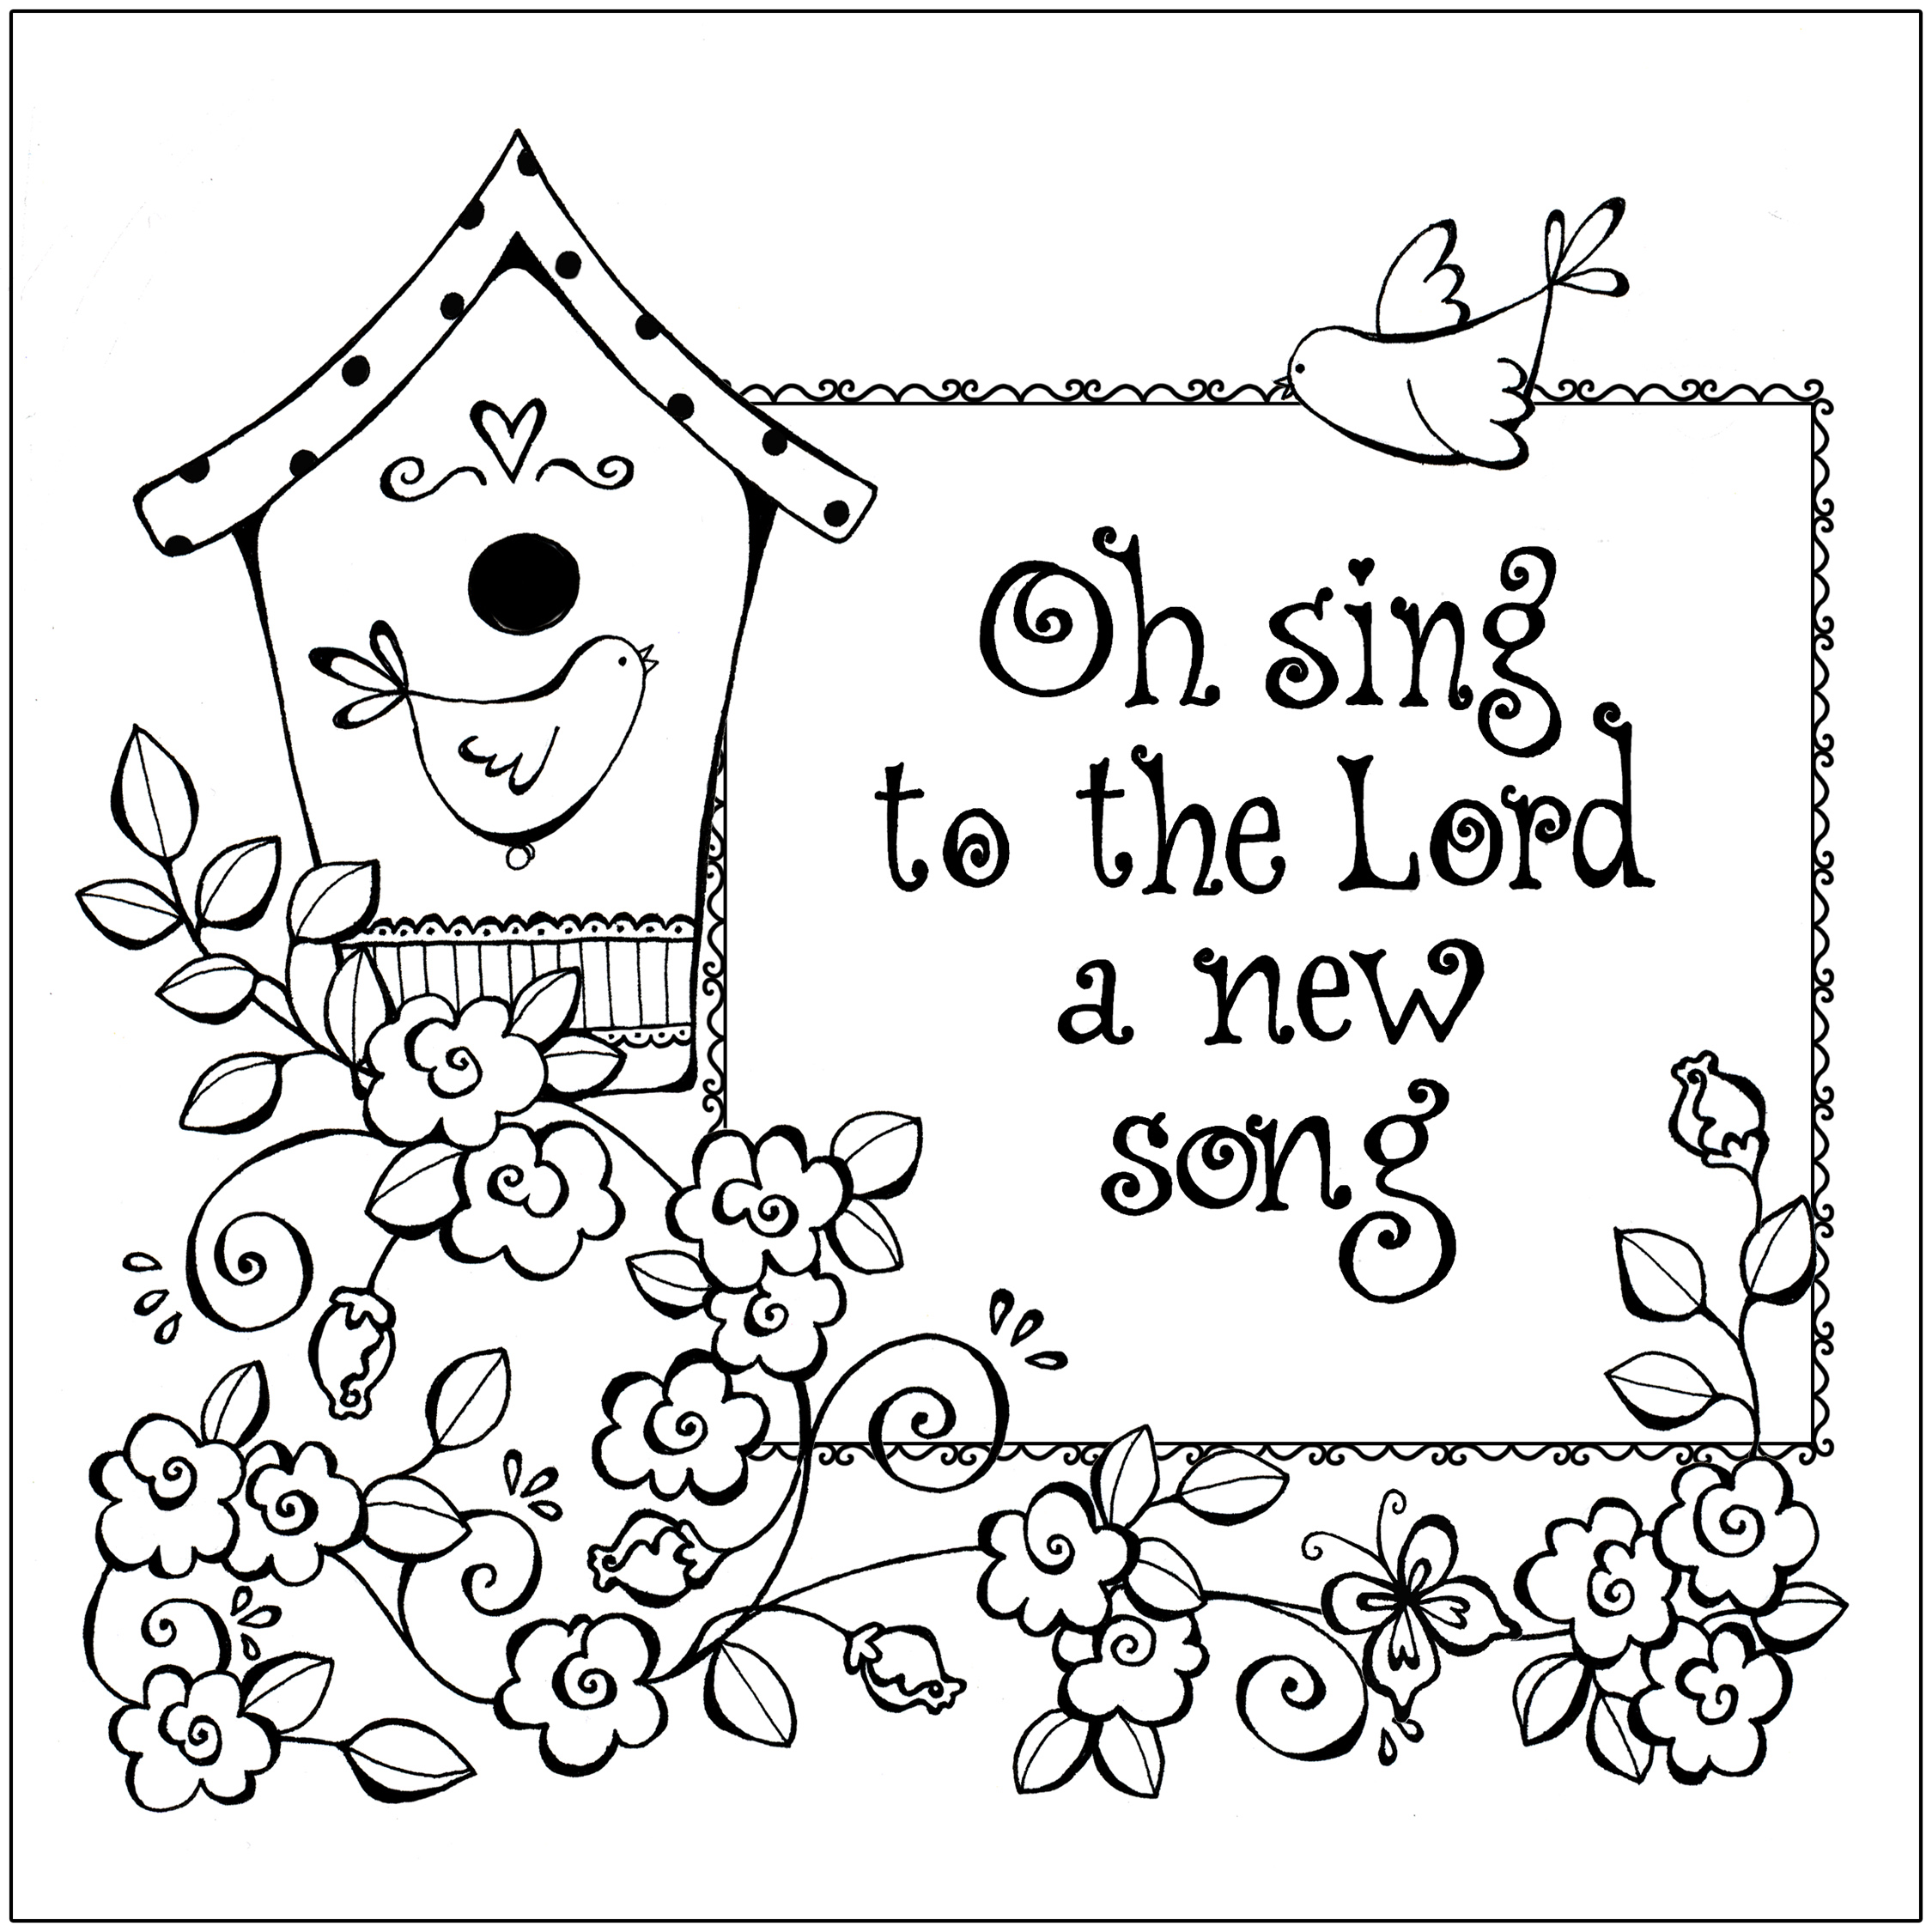 Free Bible Coloring Pages Enchanting Free Printable Christian Coloring Pages For Kids  Best Coloring Design Decoration